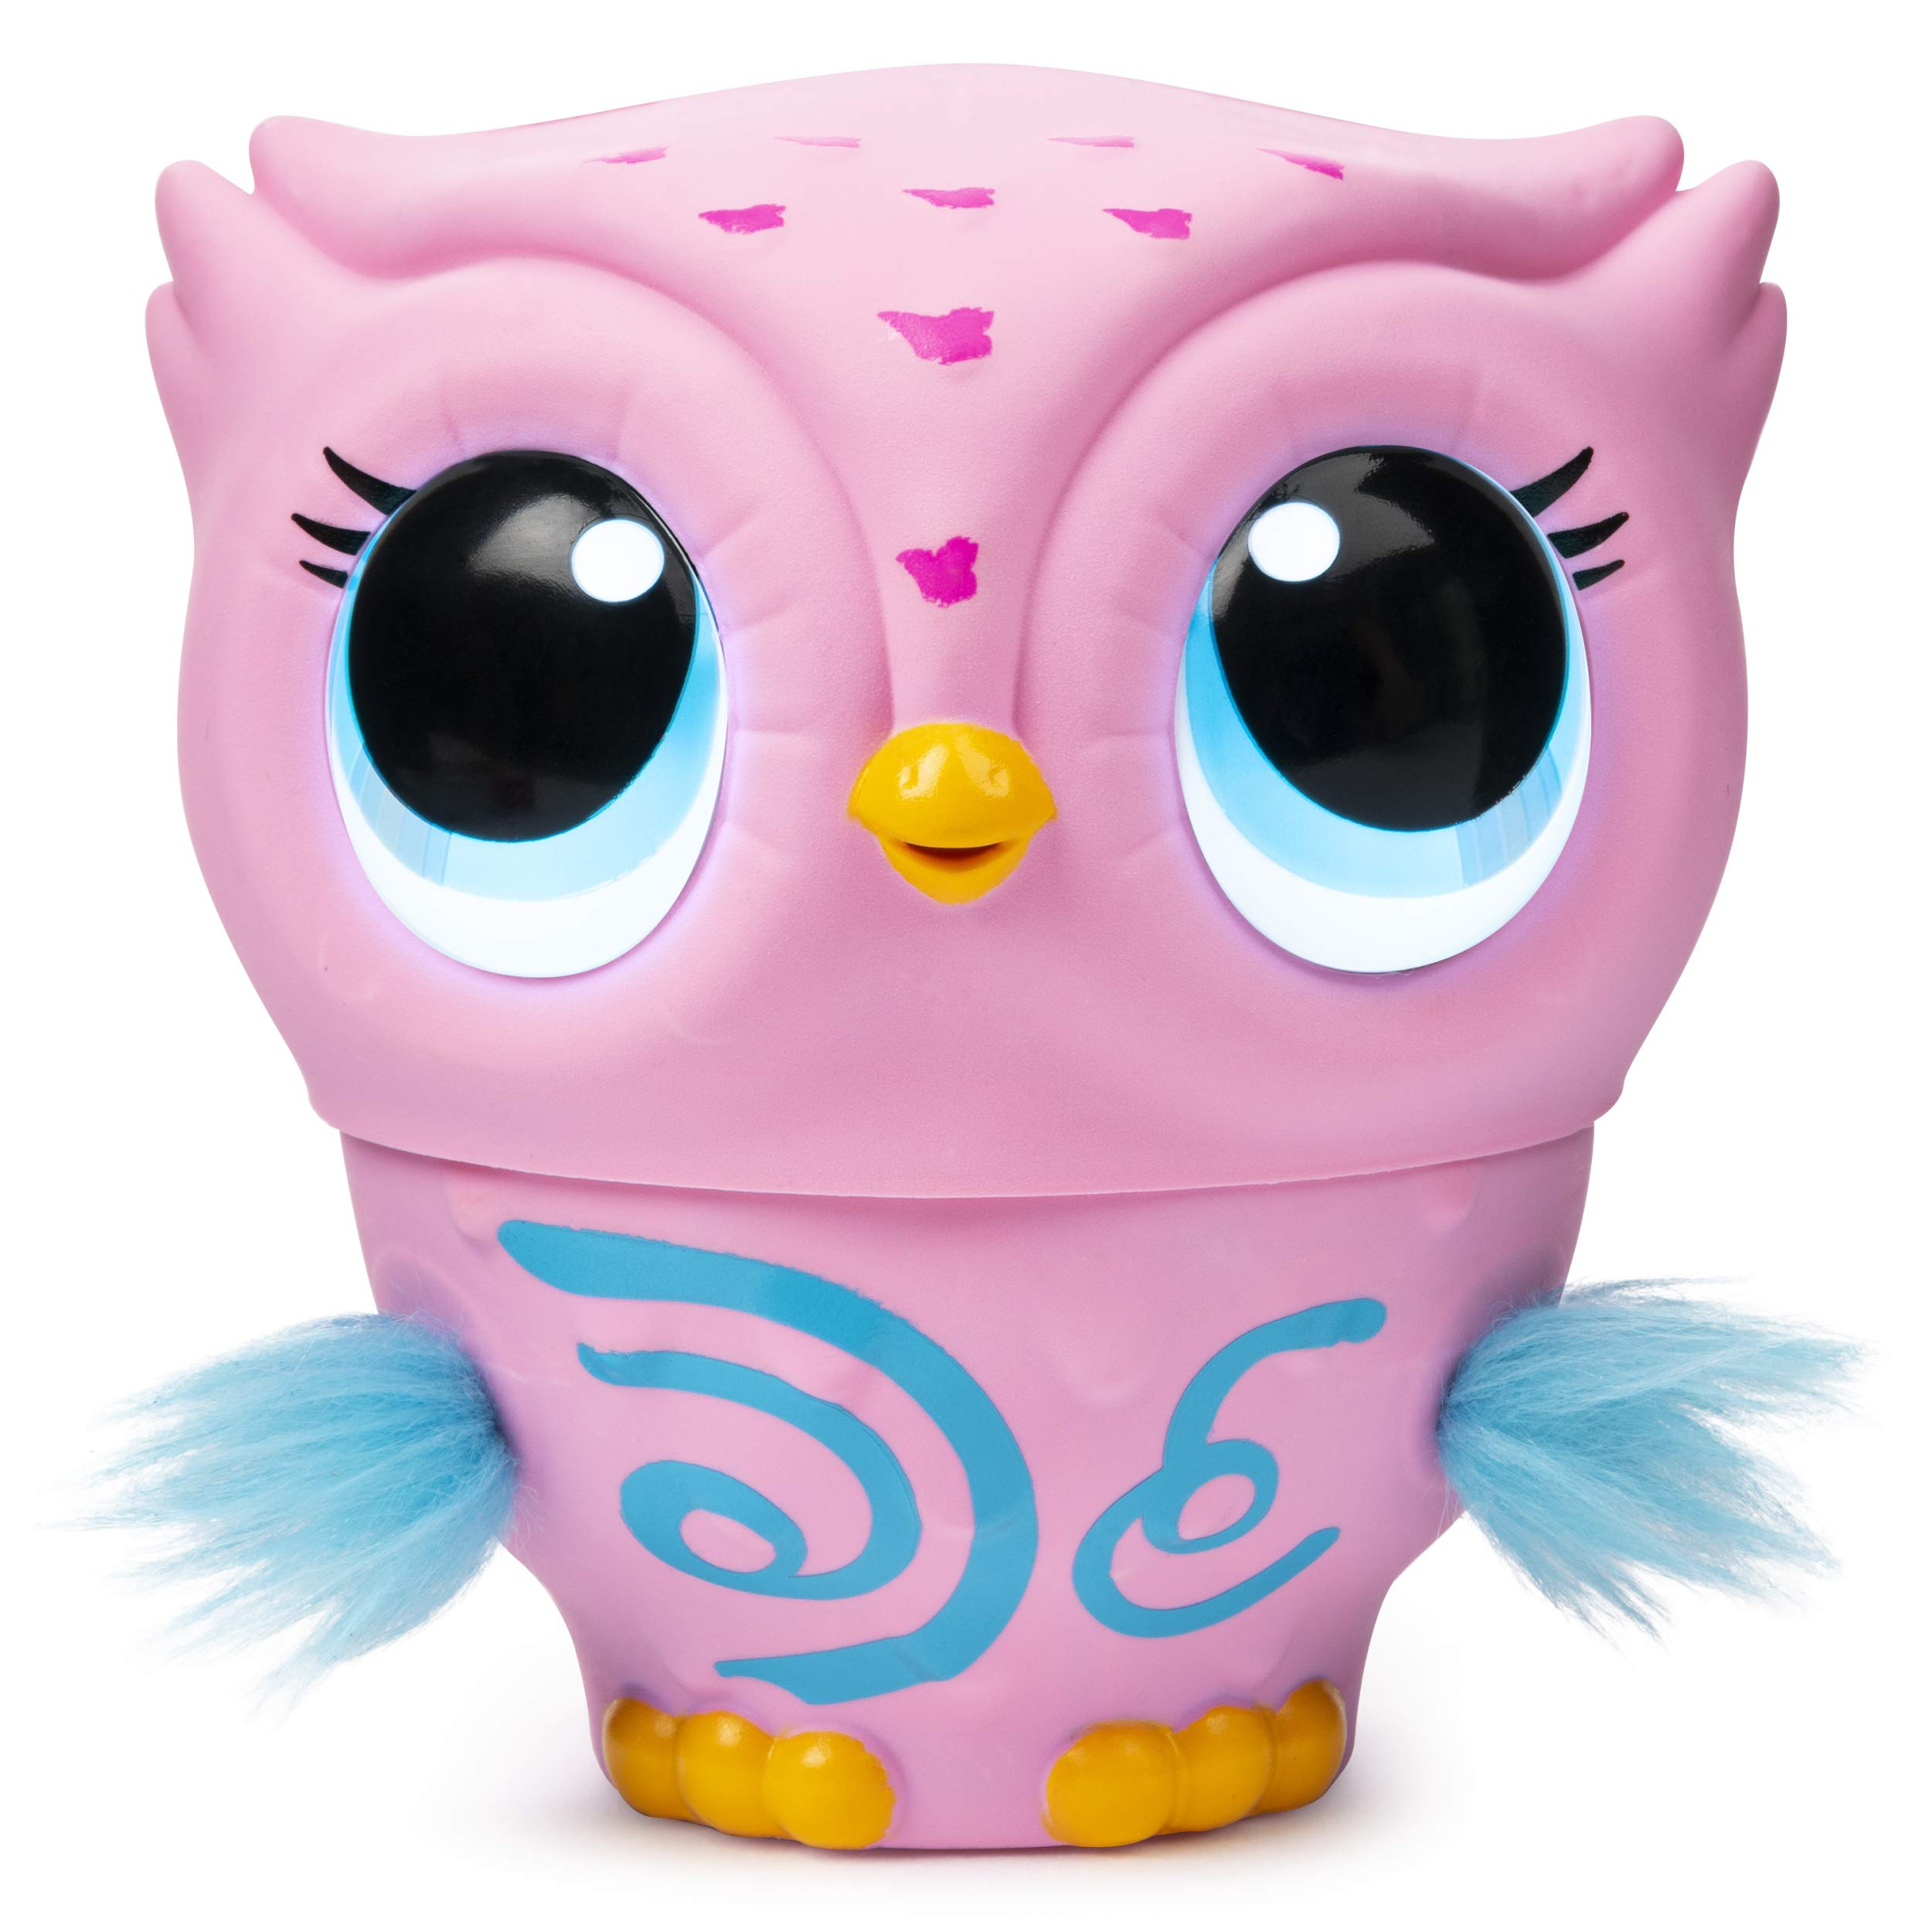 Owleez-6053359-Flying-Baby-Owl-Interactive-Toy-with-Lights-and-Sounds-Pink-for-Kids-Aged-6-and-Up-Pink